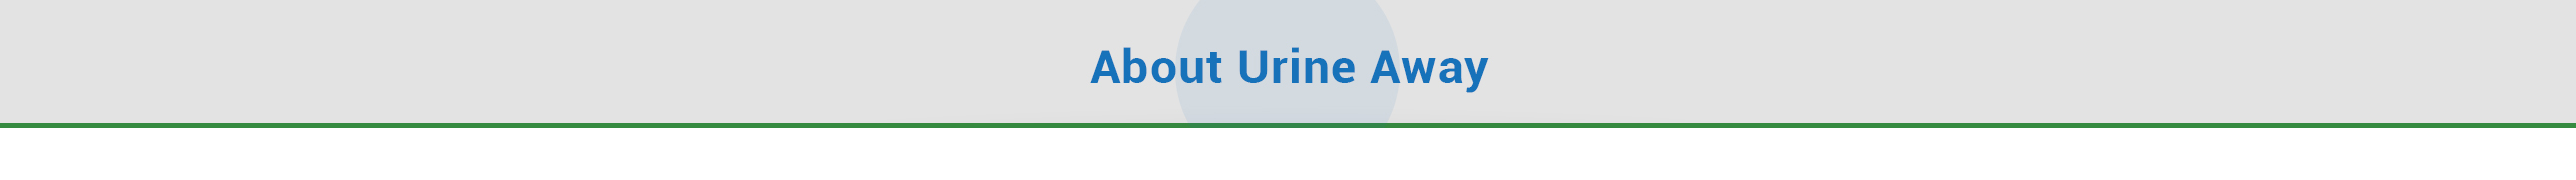 Urine-Away_Header-About